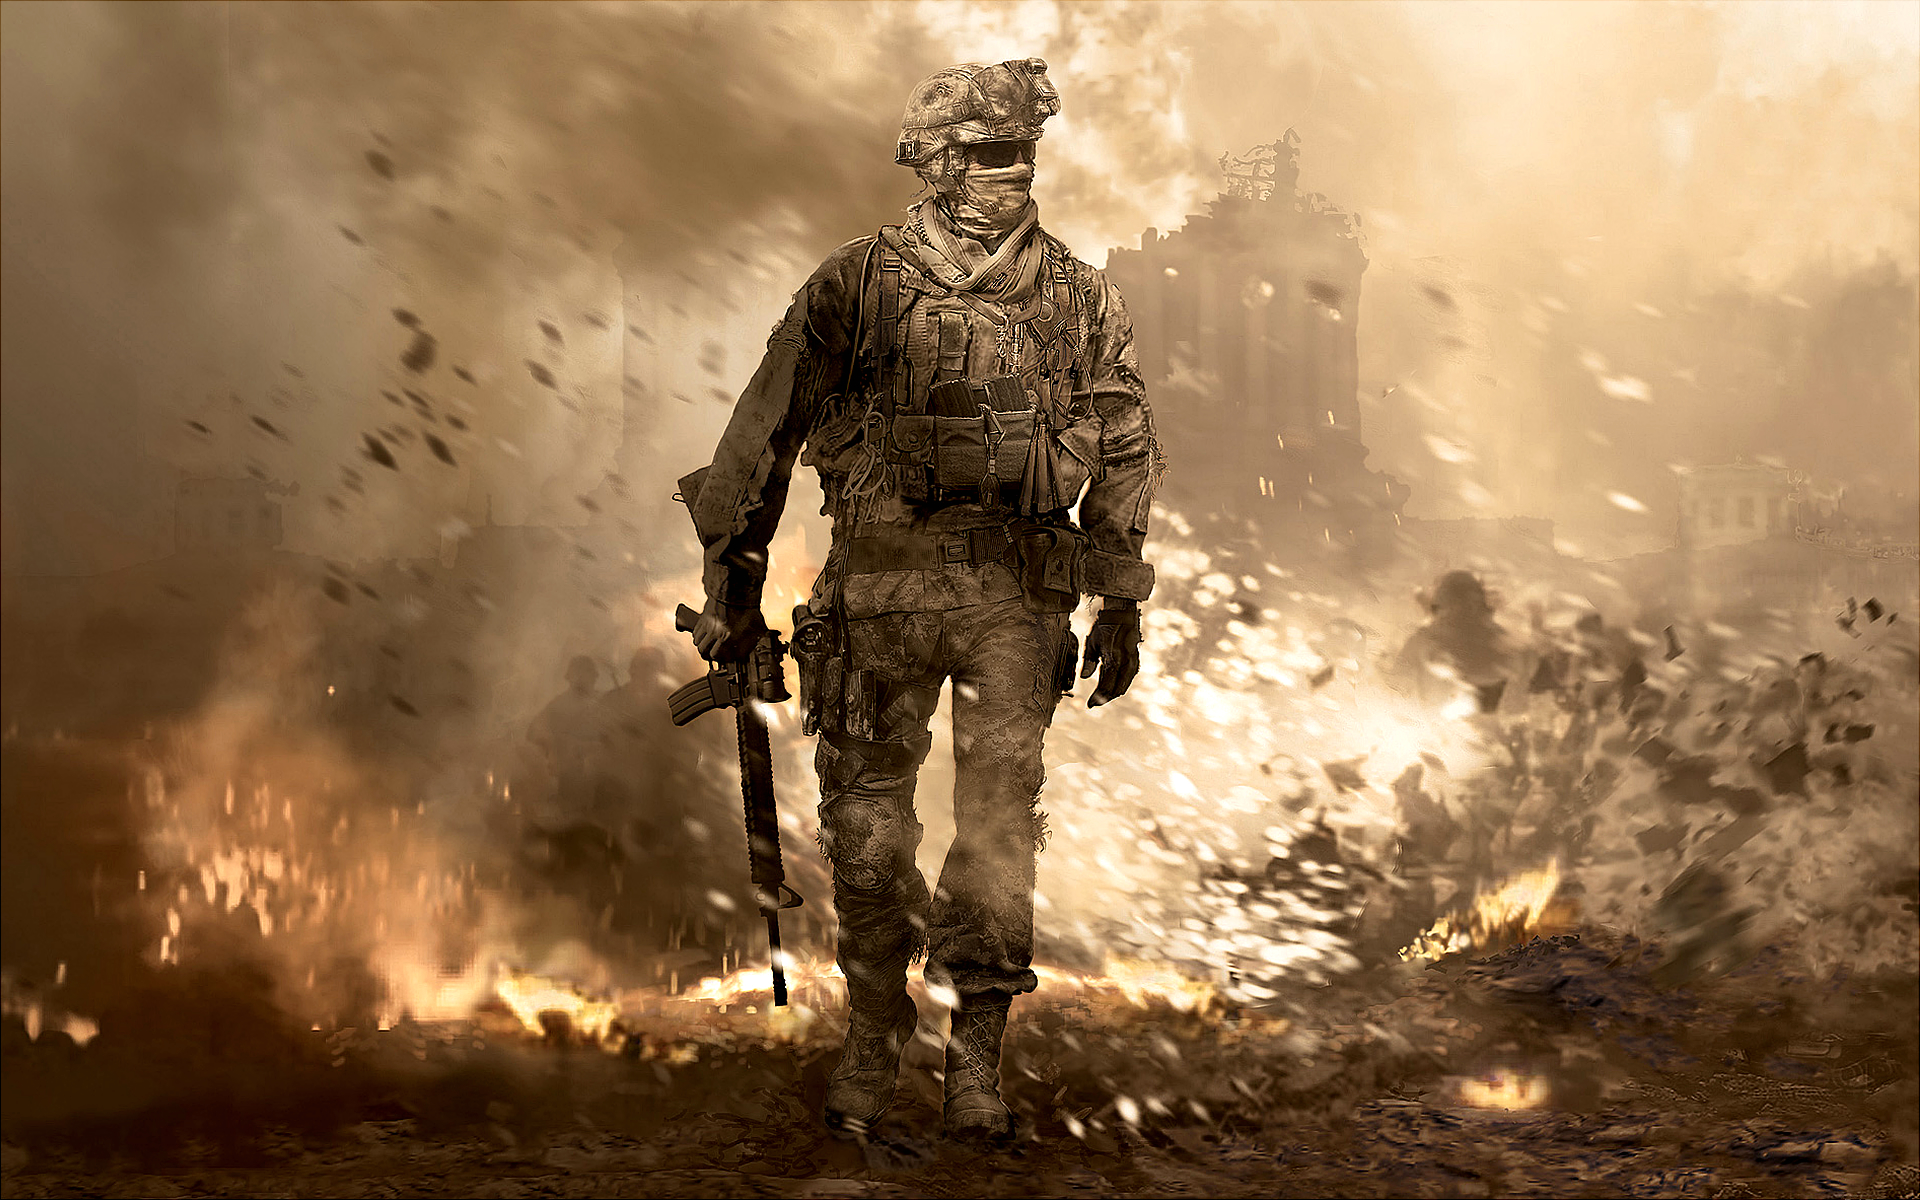 Amazing Call of Duty Modern Warfare 2 1920X1080 1920 x 1200 · 1999 kB · jpeg